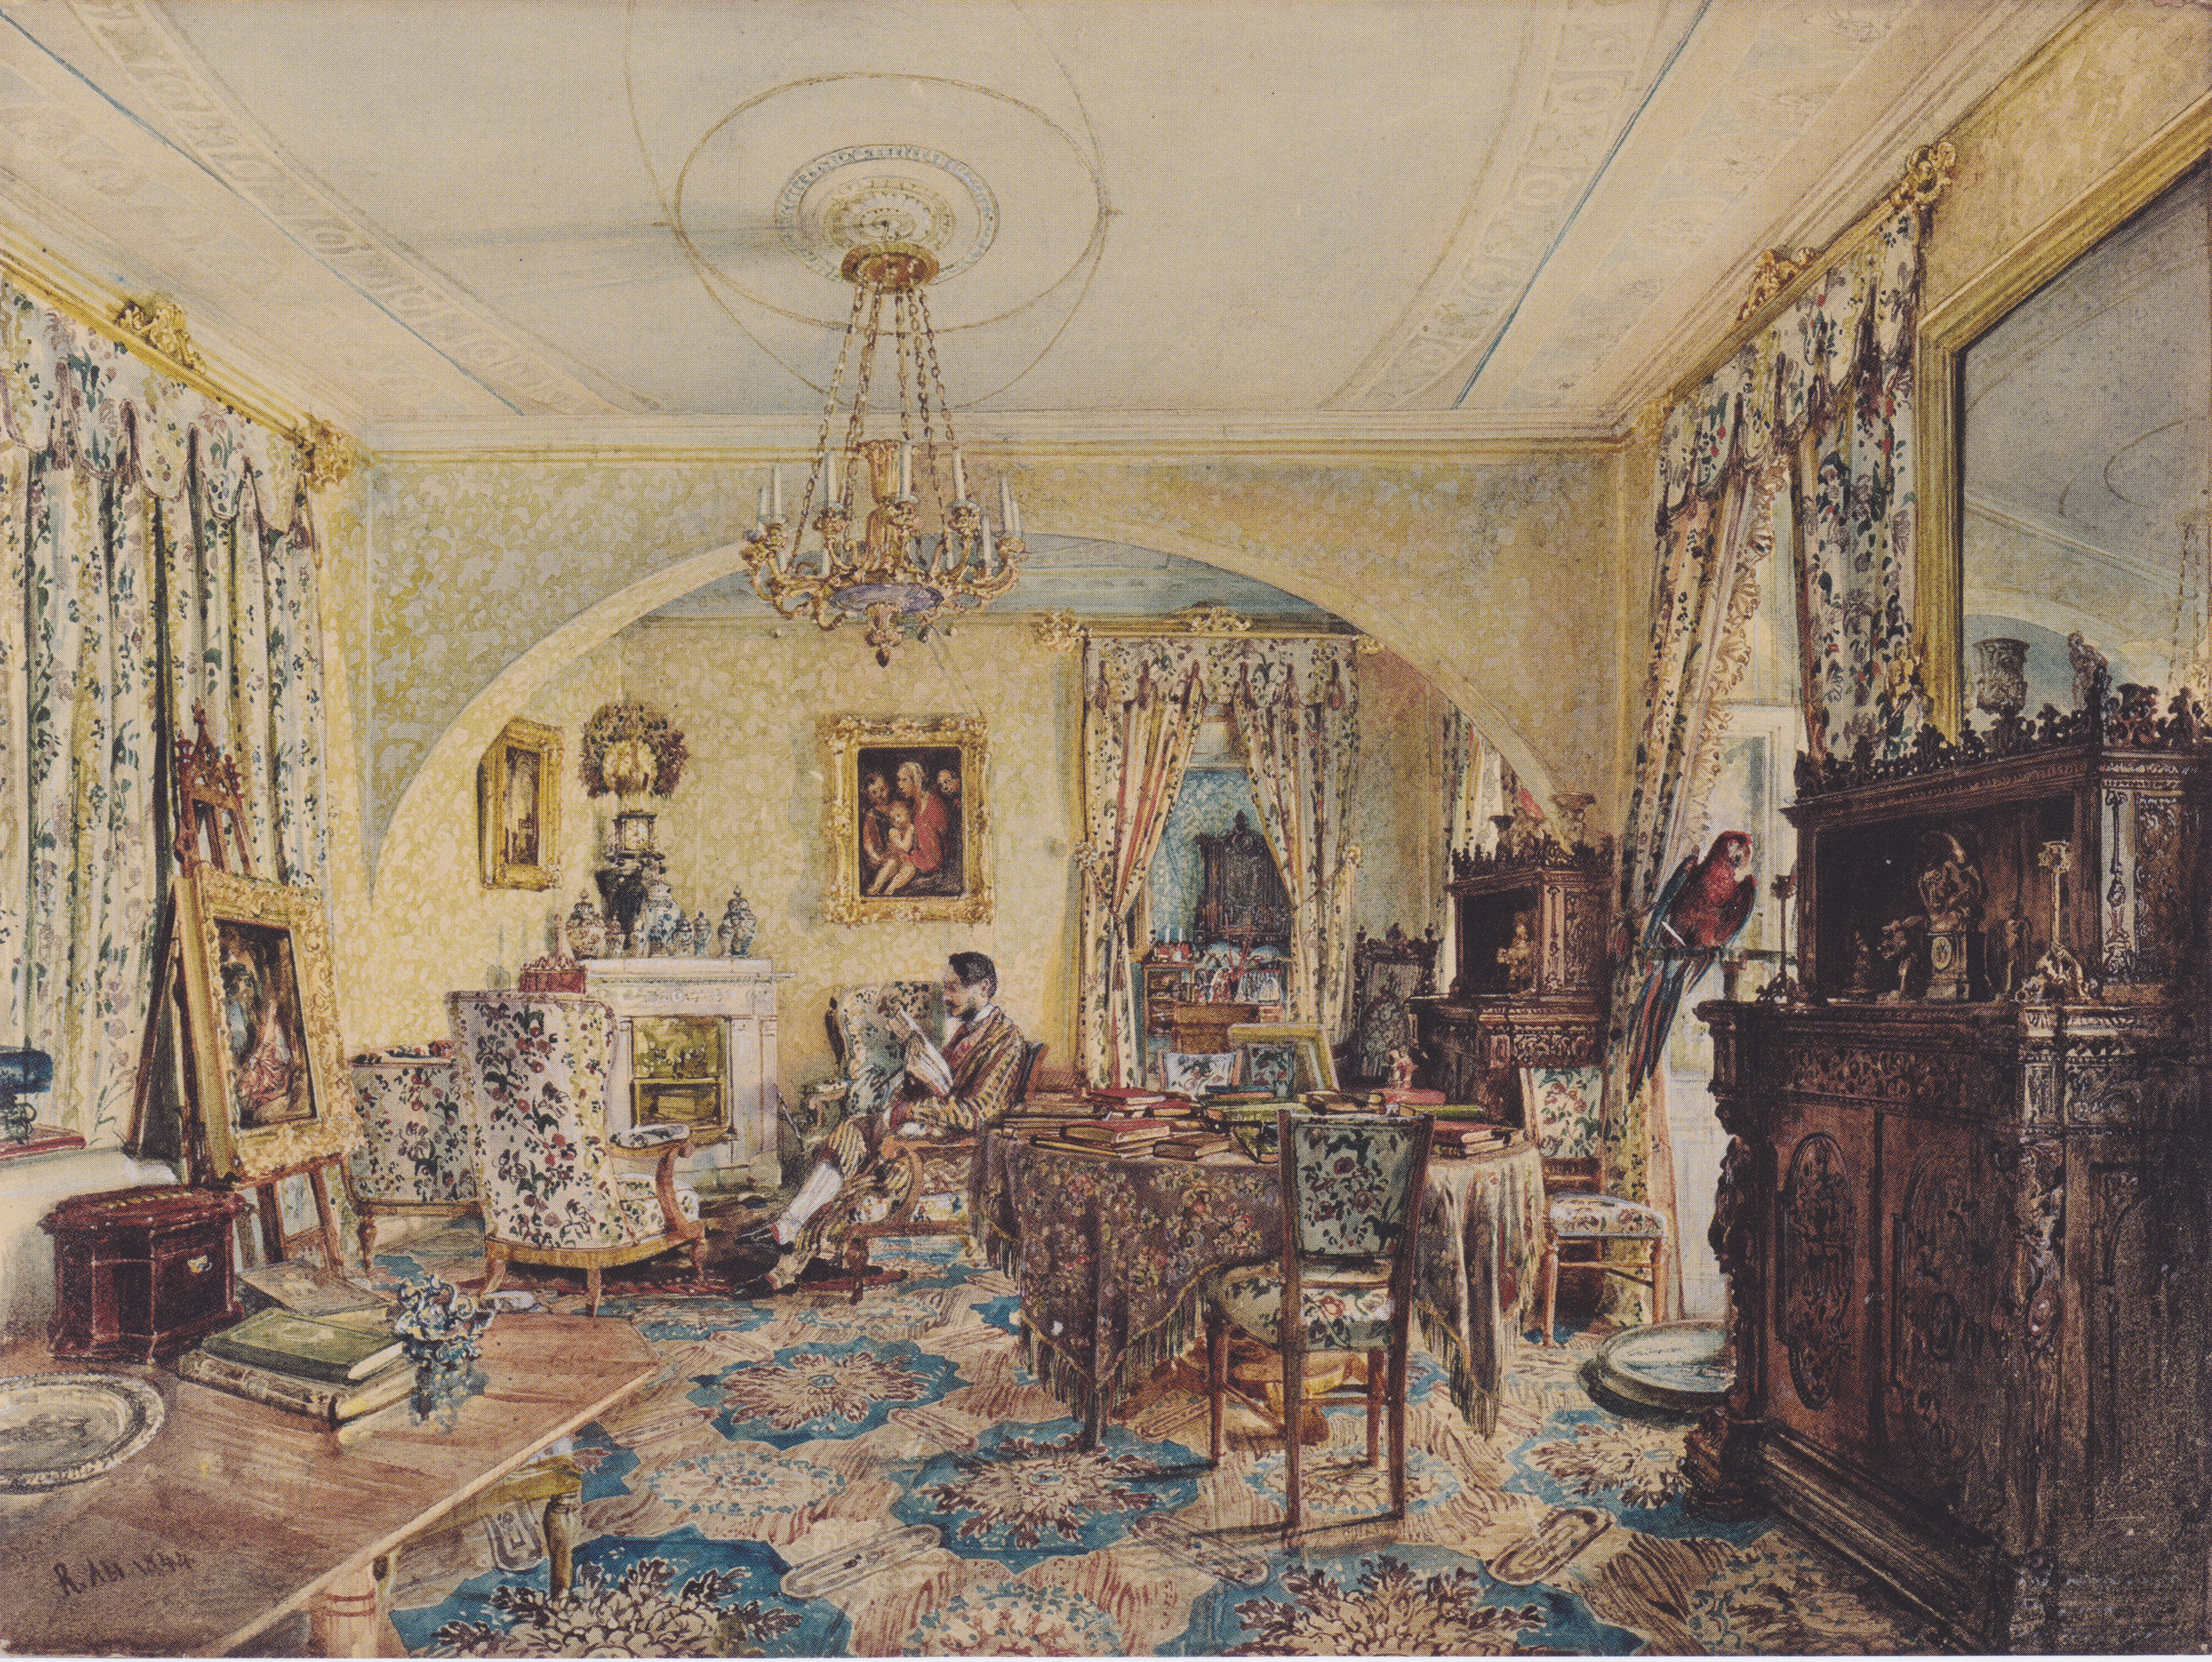 Count Casimir Batthyány in his saloon at Castle Siklós, 1844